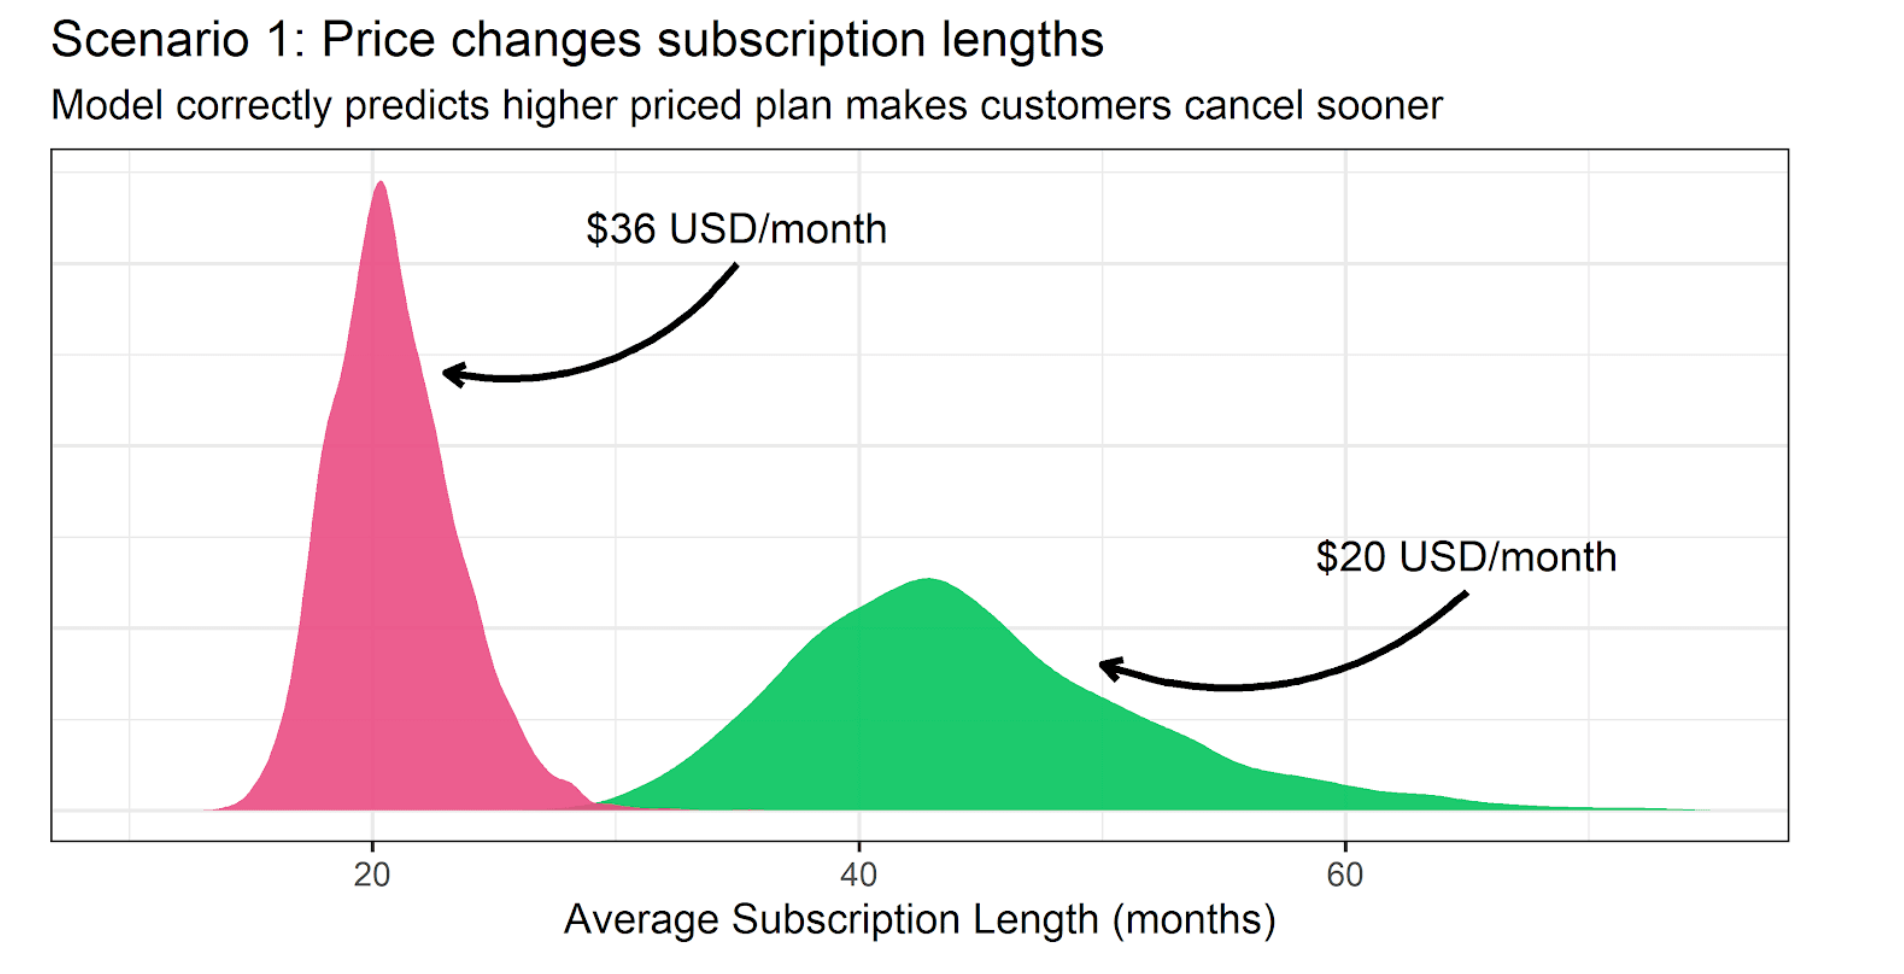 Price changes subscription lengths